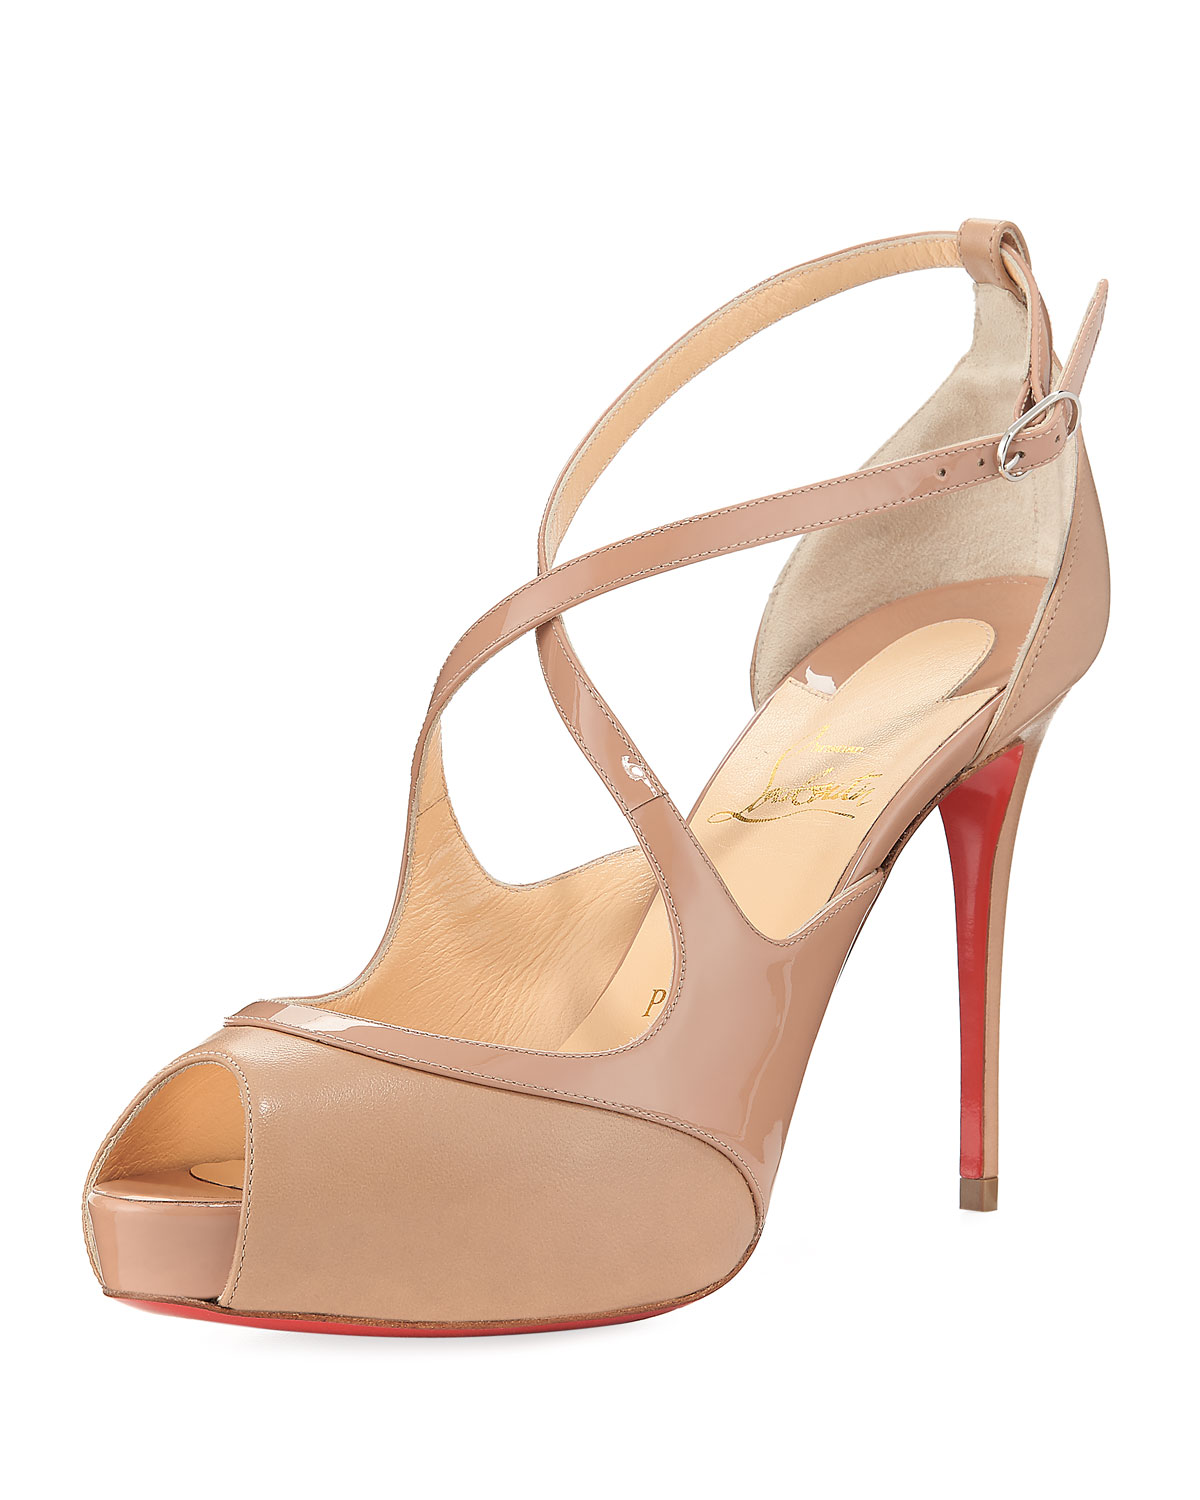 87a17471214 Christian Louboutin Mirabella Strappy Patent Red Sole Sandal ...